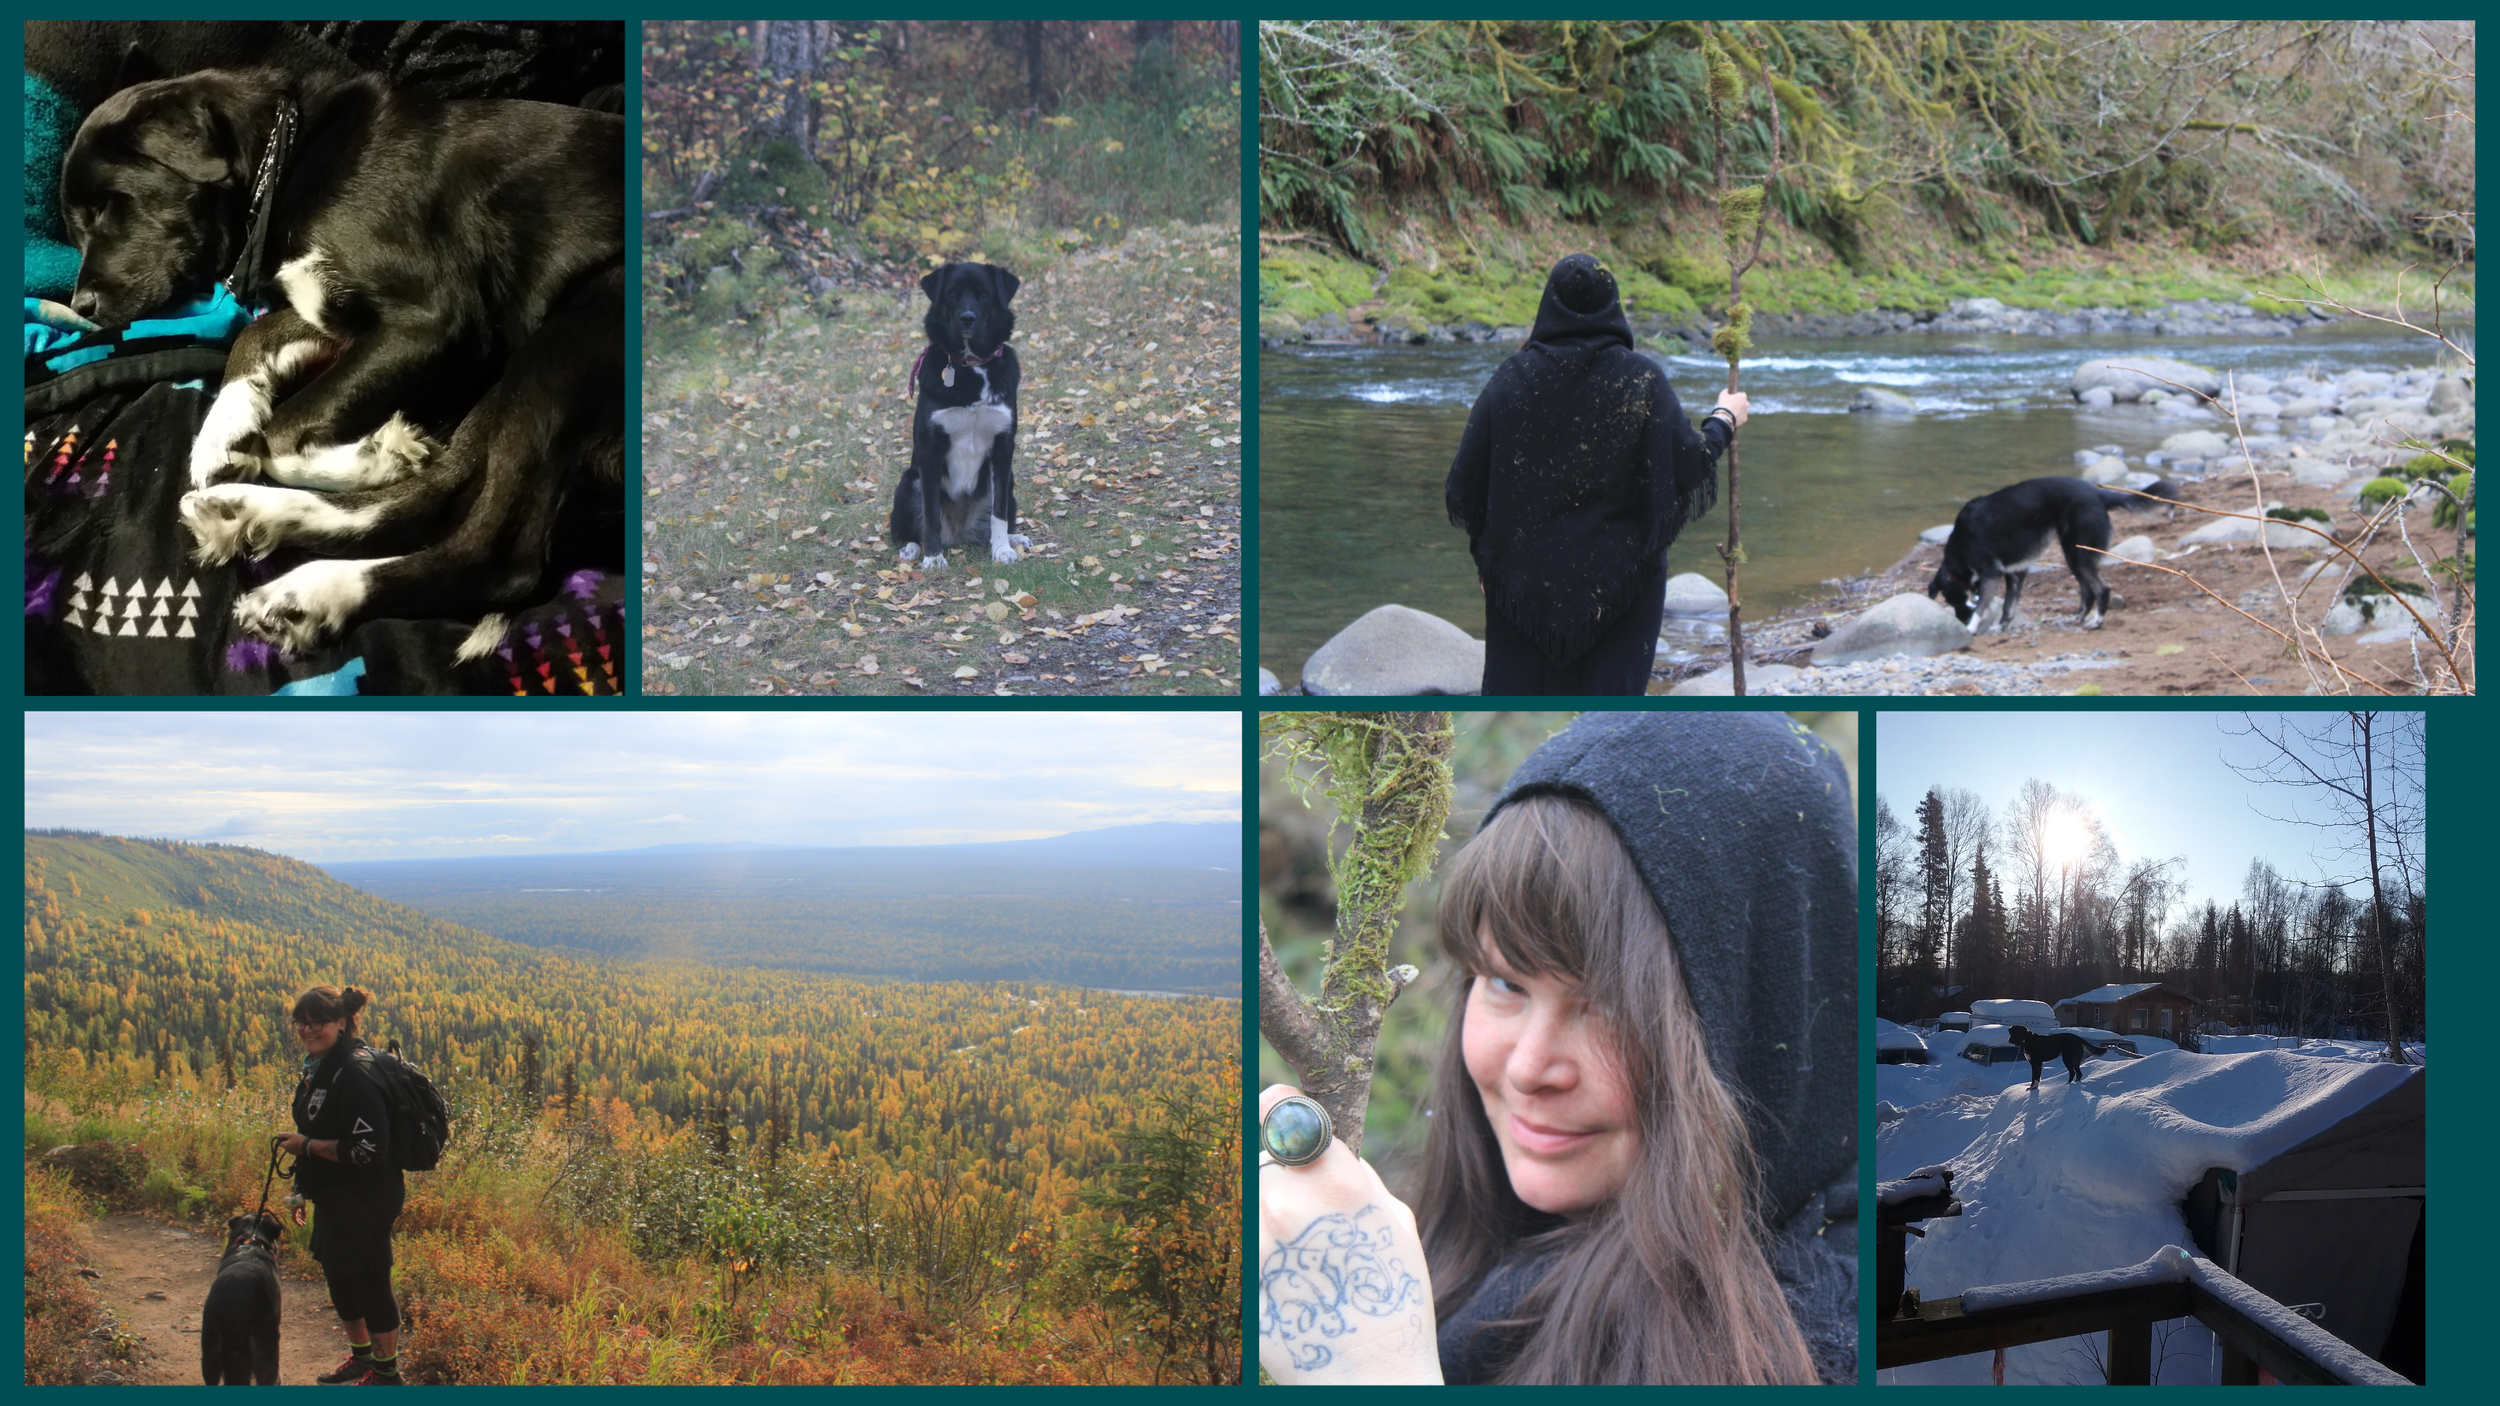 Top row: Pickle sleepin' on my bed, sittin' pretty on our favorite trail near our Alaska home, and us bonehunting on the Trask River at our Oregon home. Bottom row: Us on a day-hike on the K'esugi Ridge Trail in southeast Alaska, me on the Trask, and Pickle standing on top of the woodshed, having climbed up the snow berm at our house in Talkeetna, Alaska.